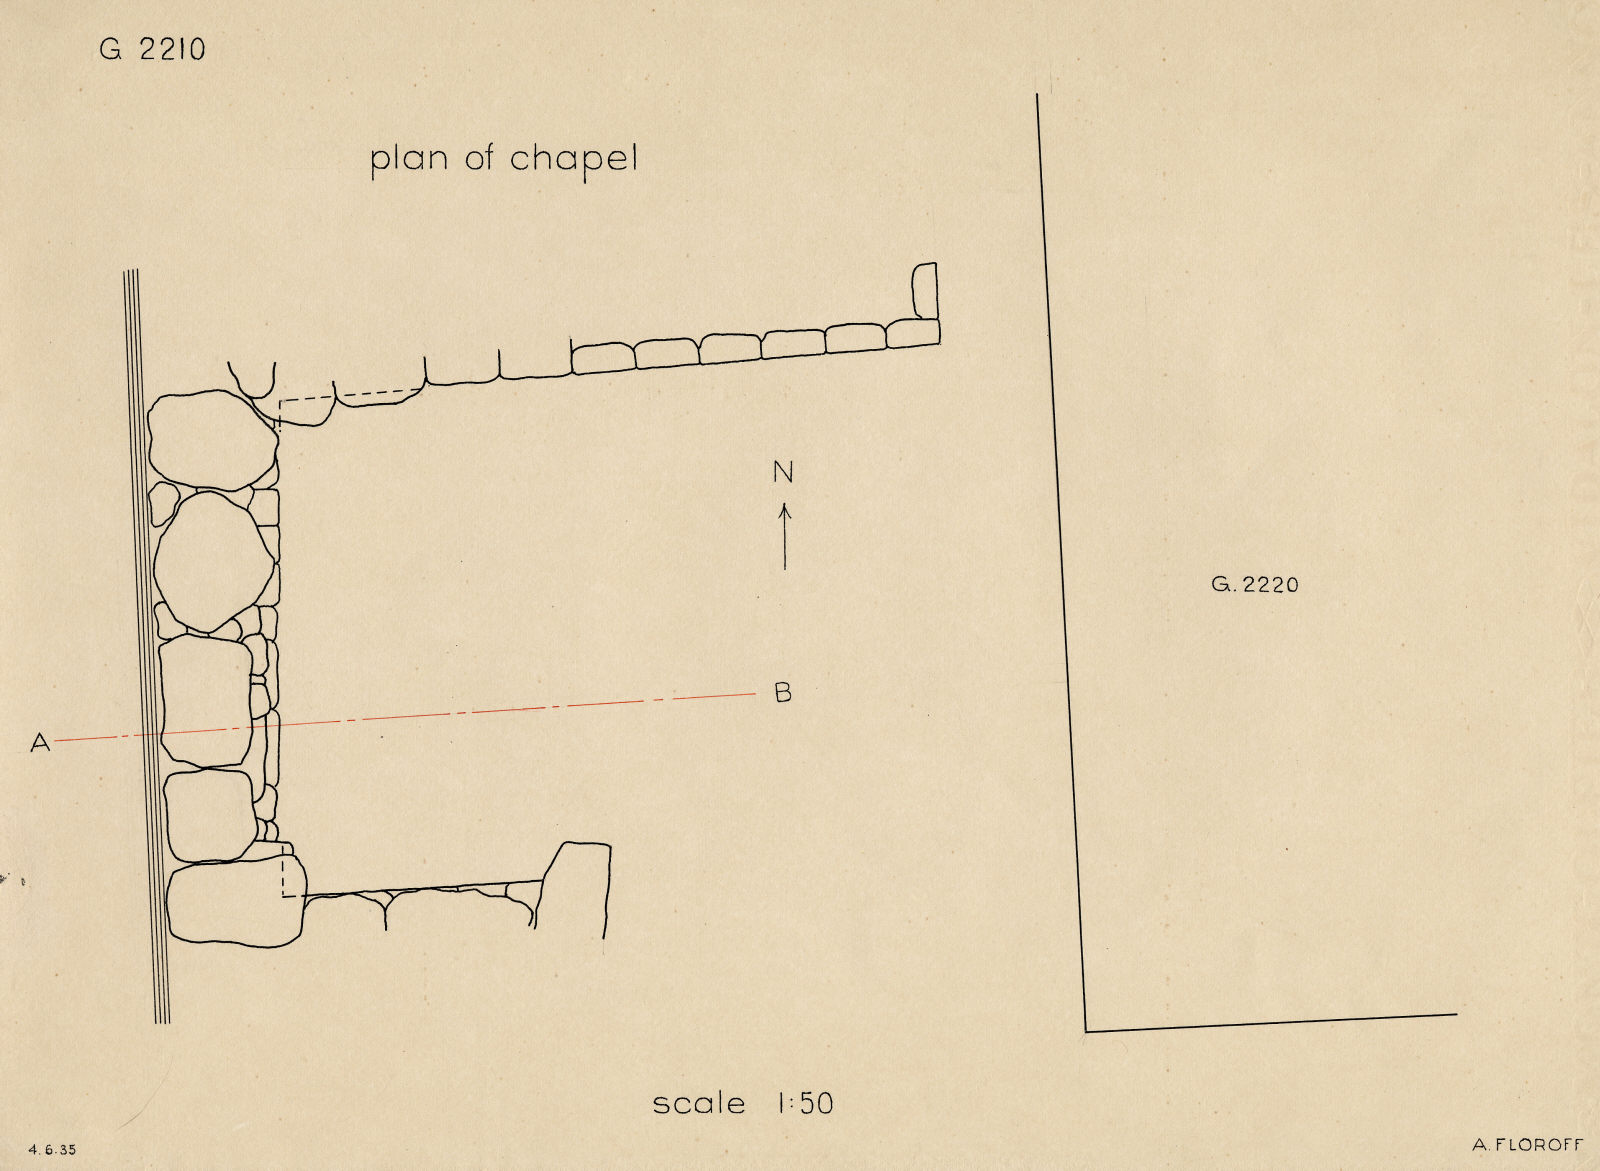 Maps and plans: G 2210, Plan of chapel